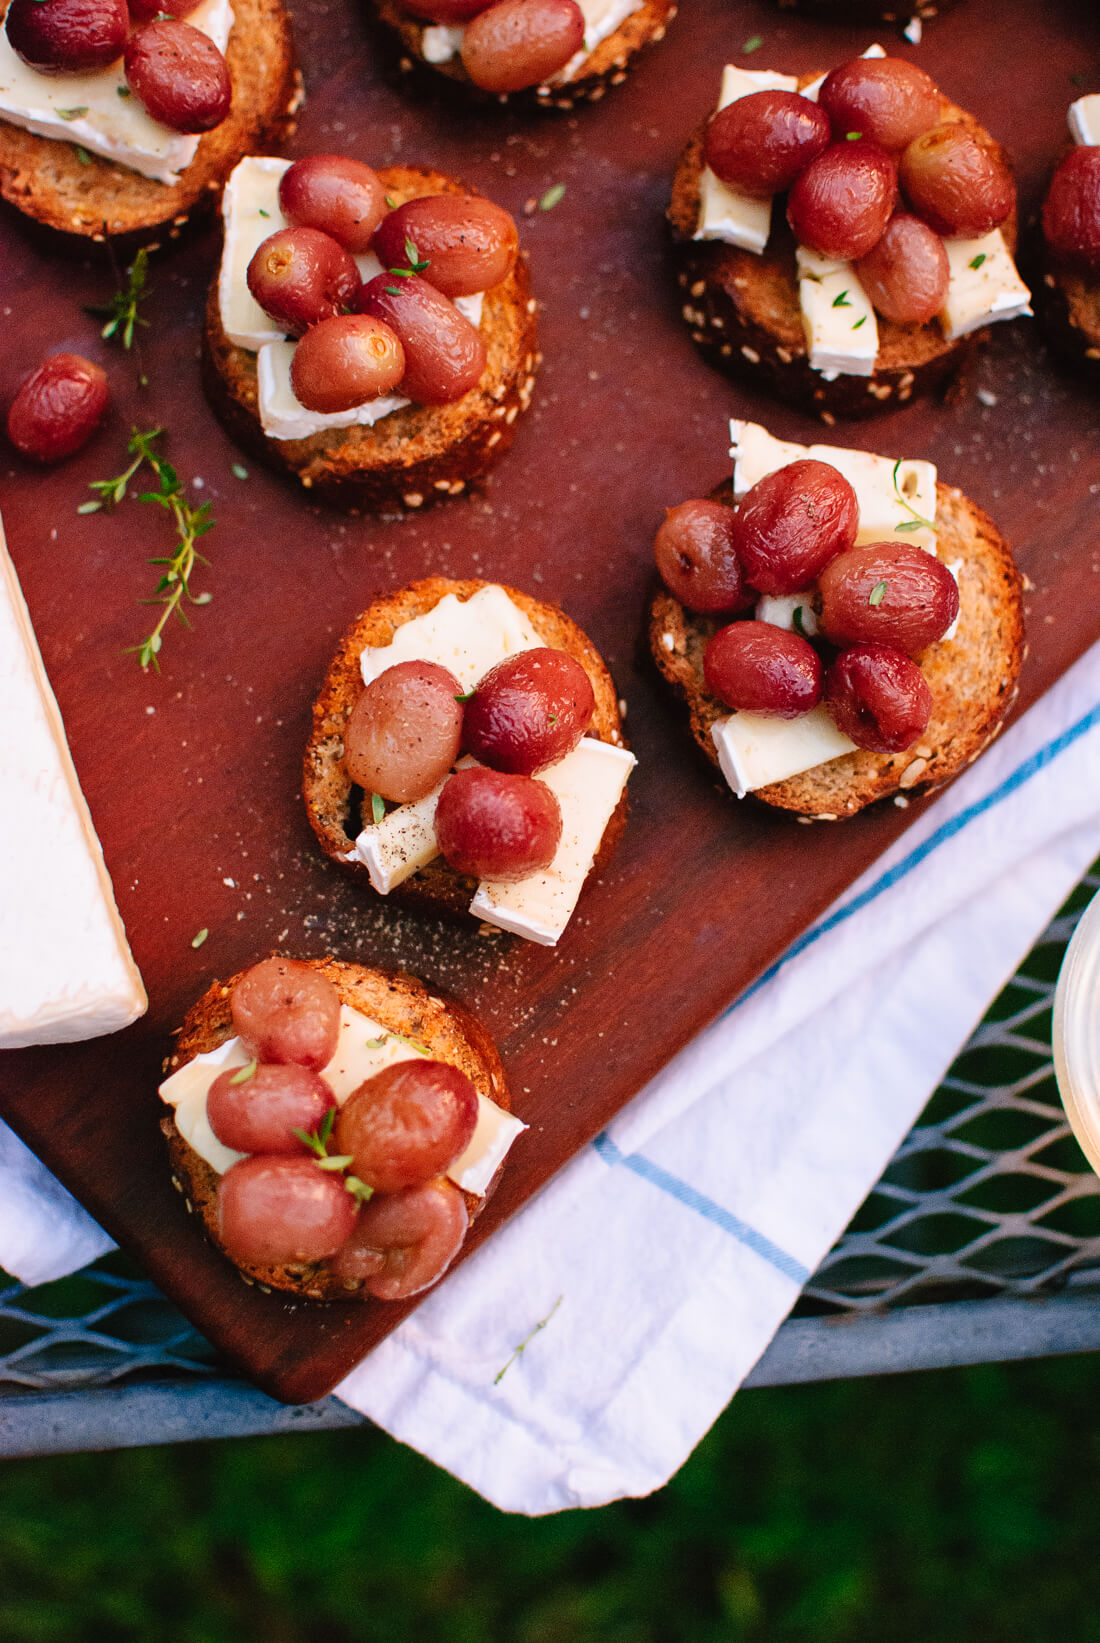 Jammy roasted grapes on brie and toast make a simple, seasonal appetizer!